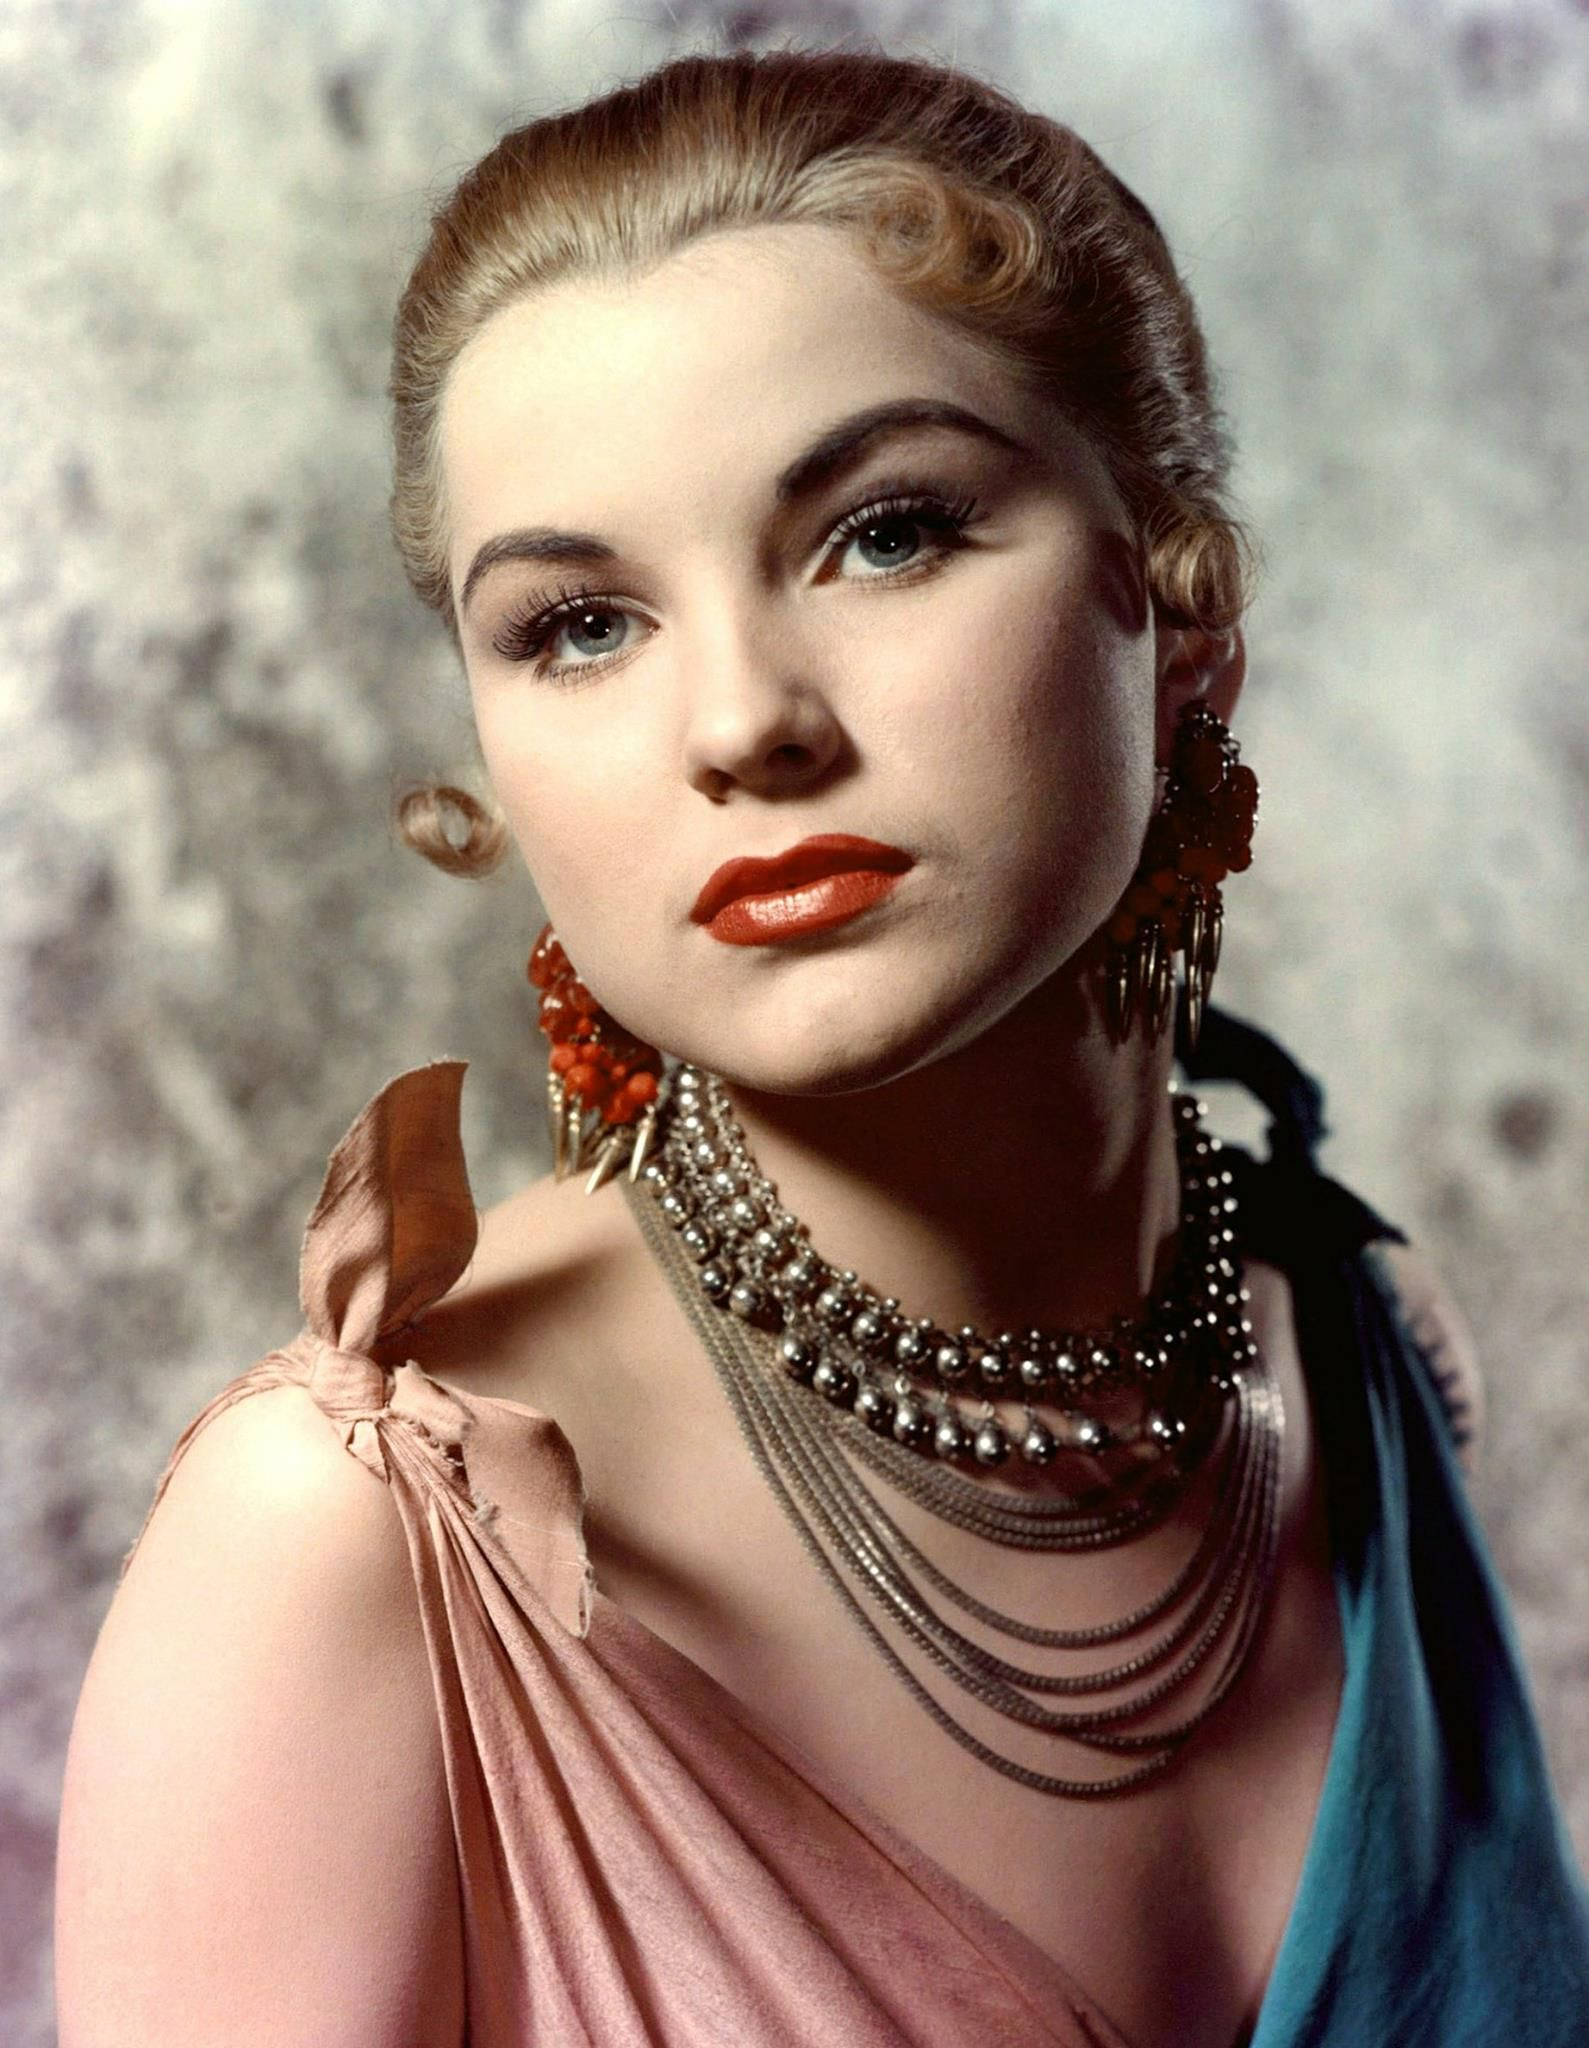 Debra Paget An American actress and entertainer who is